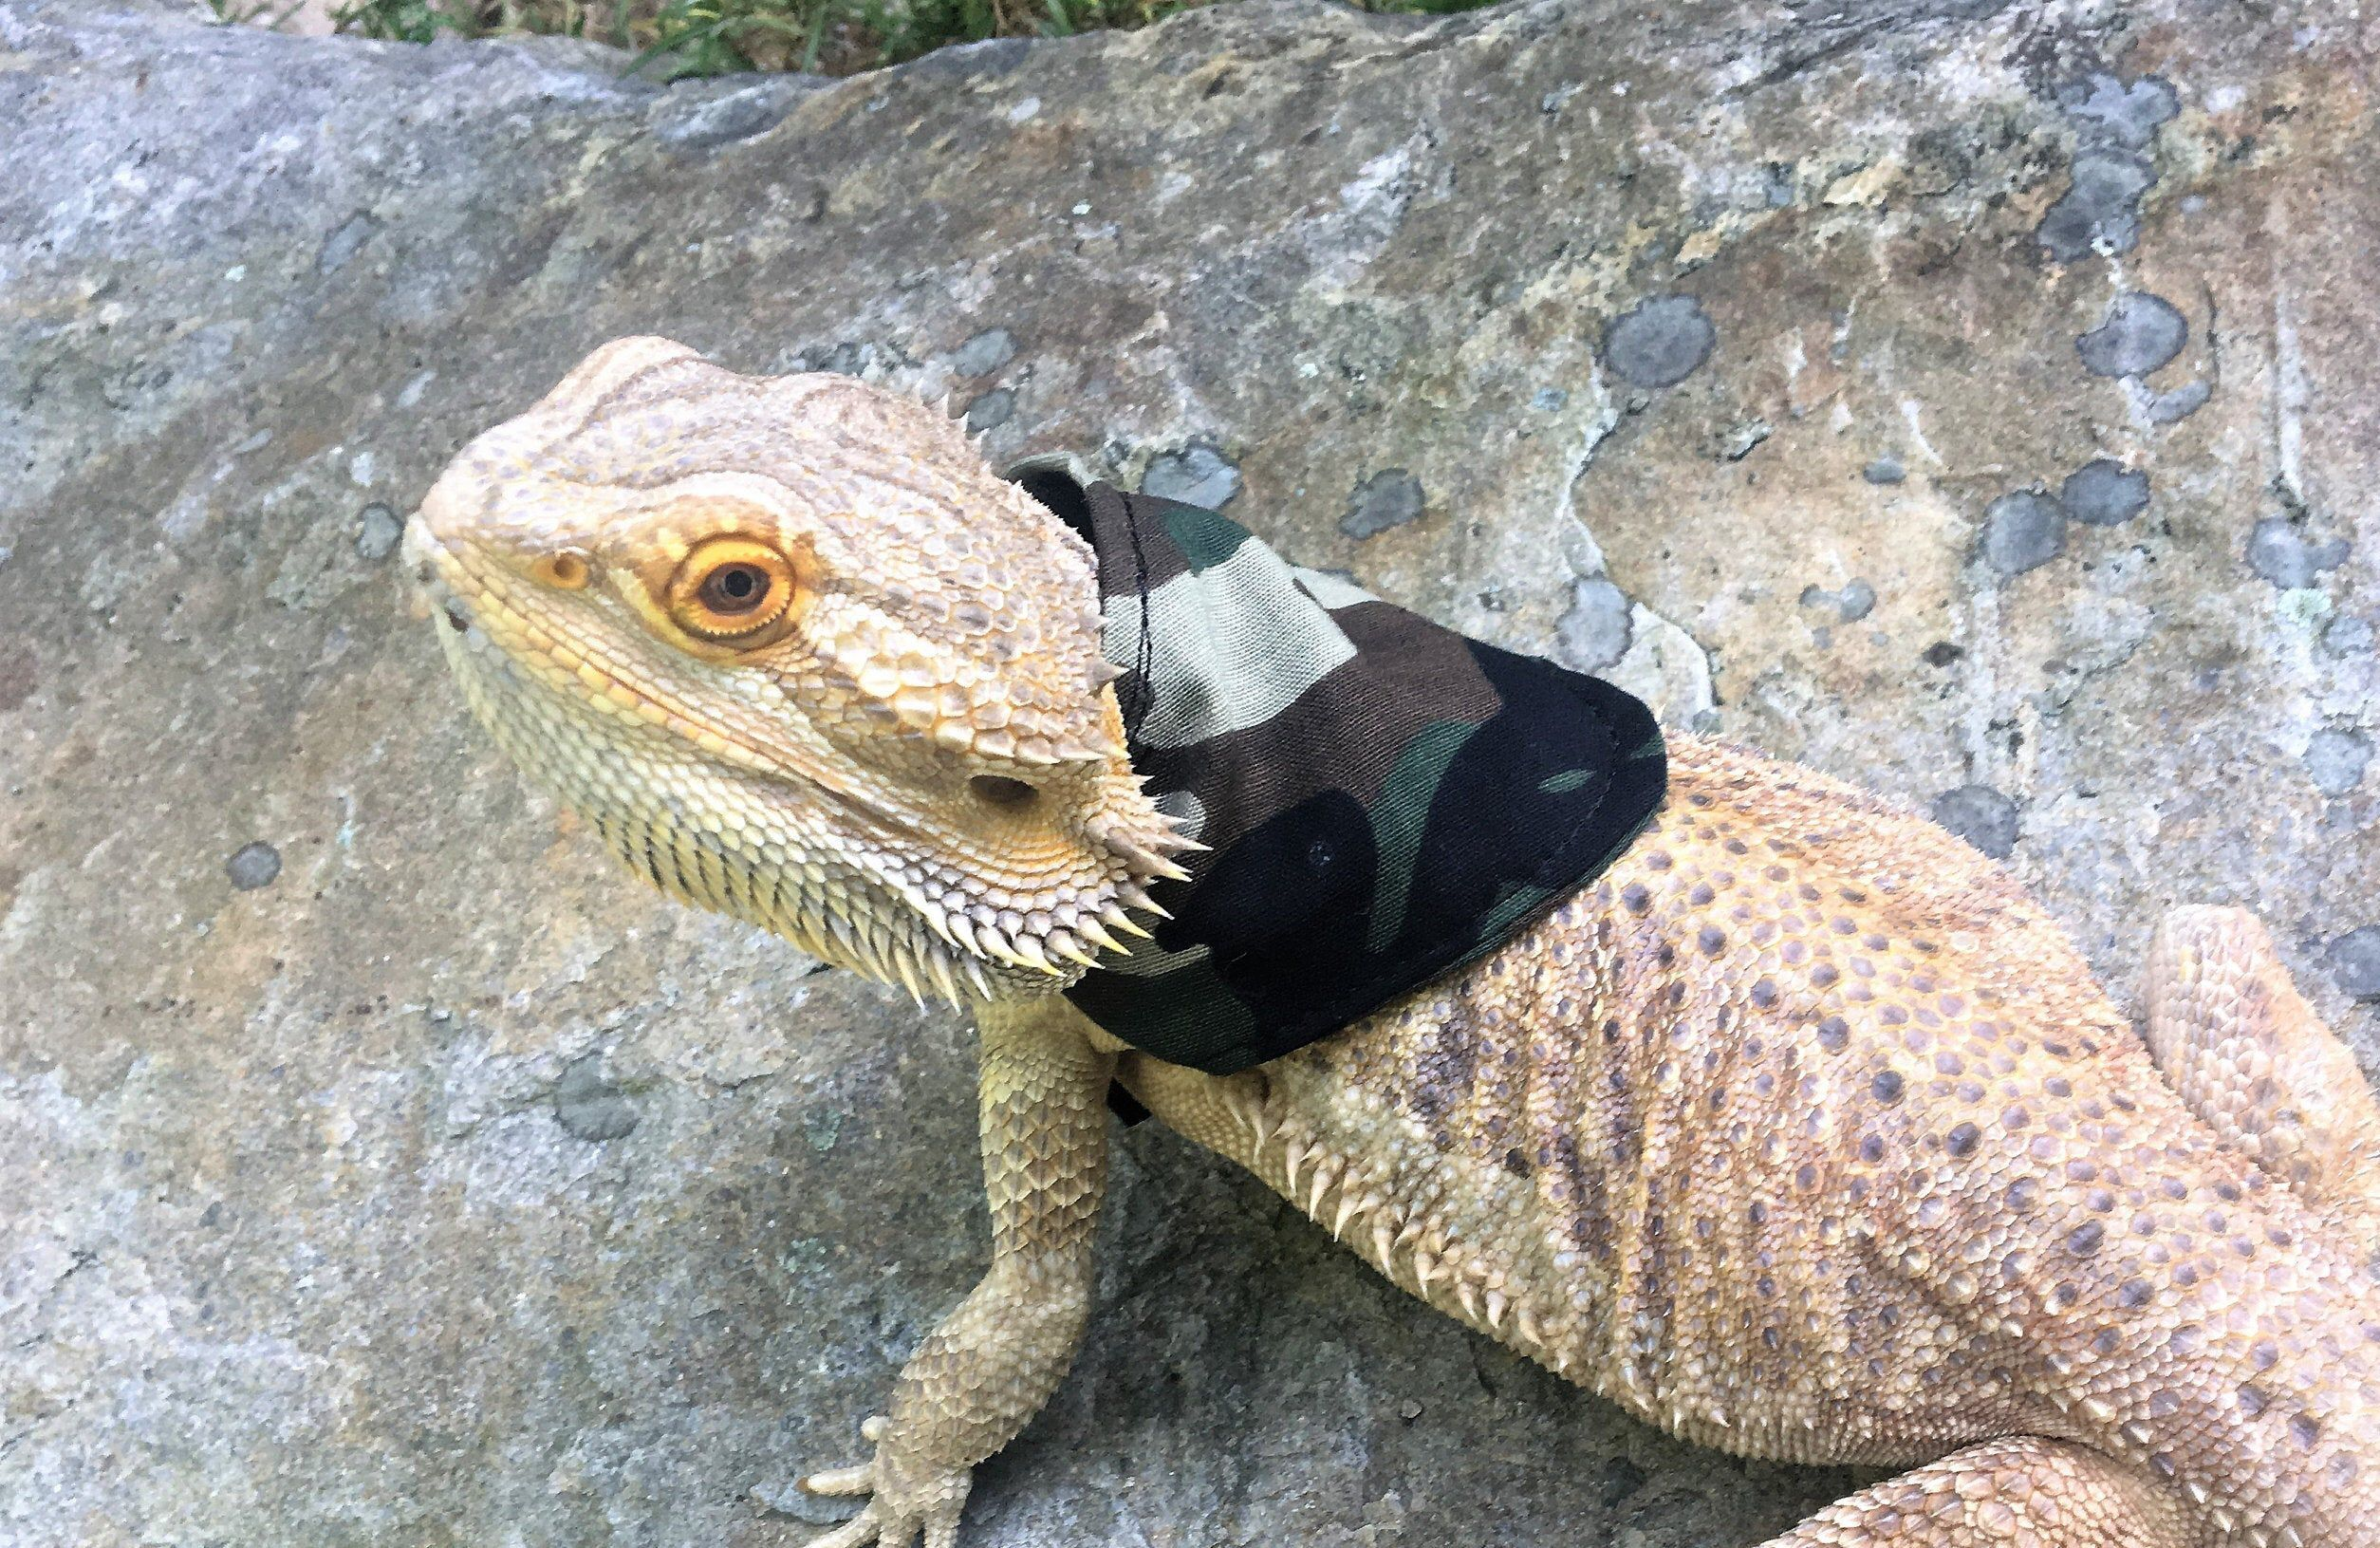 Camouflage Bandanna For Bearded Dragon Or Other Reptile Or Small Pet Small Pets Bearded Dragon Pets